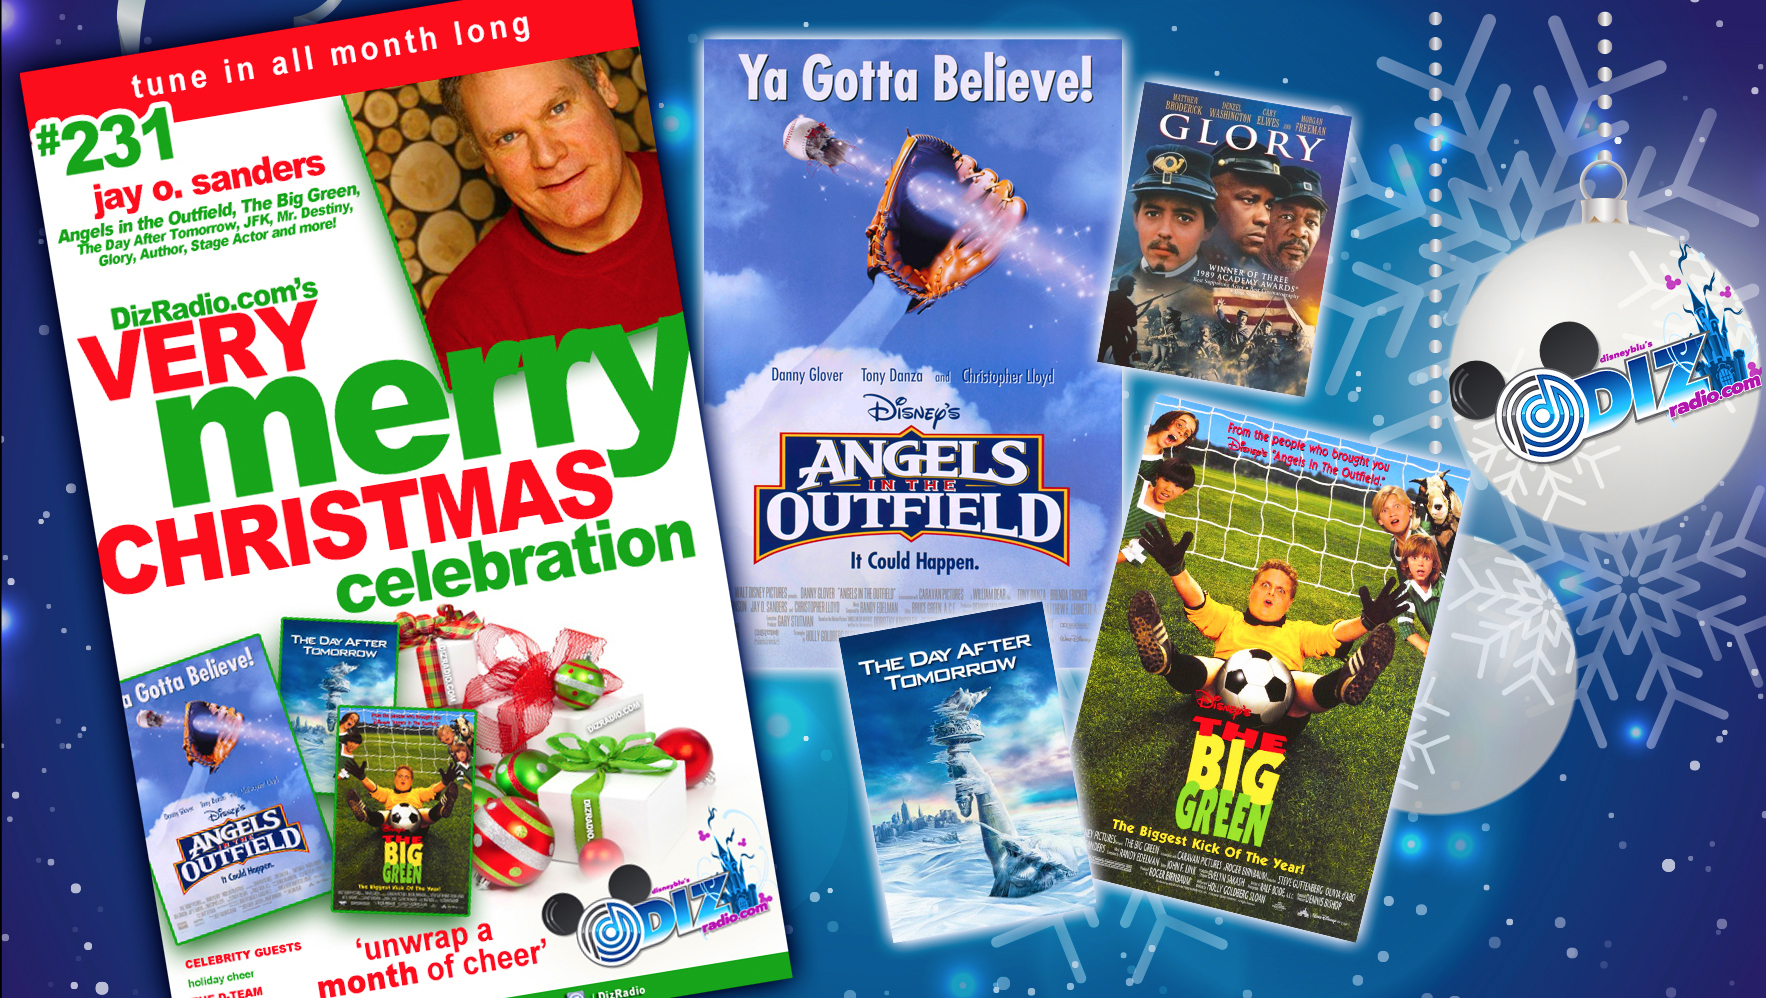 DisneyBlu's DizRadio Disney on Demand Show #231 w/ Guest JAY O. SANDERS (Angels in the Outfield, The Big Green, Mr. Destiny, Day After Tomorrow, JFK, Glory, Author and more)